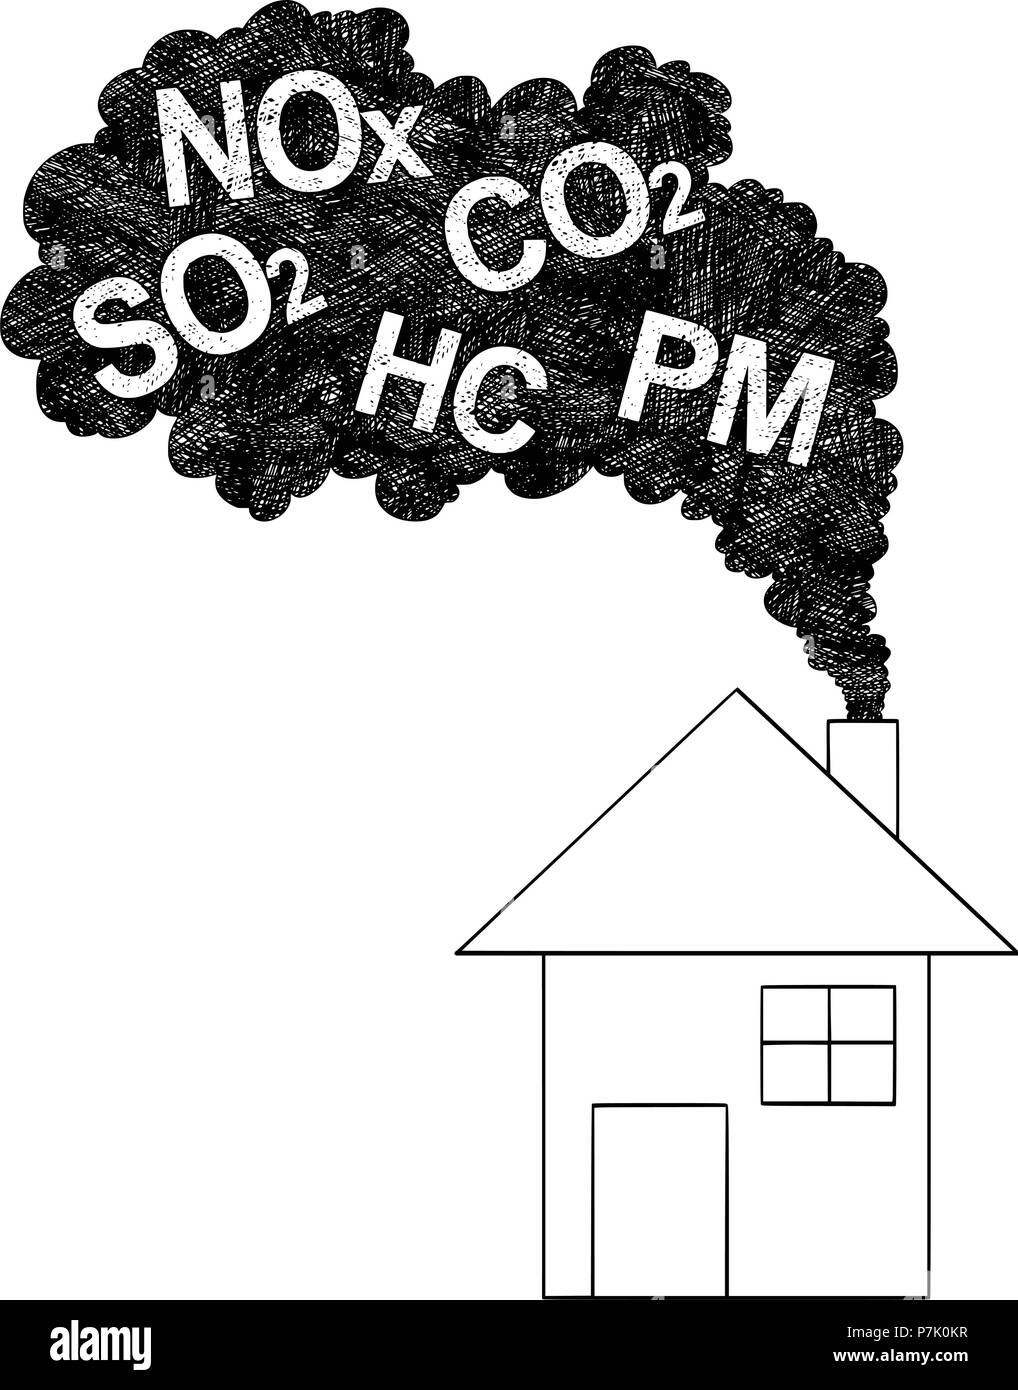 Vector artistic drawing illustration of smoke coming from house chimney air pollution concept